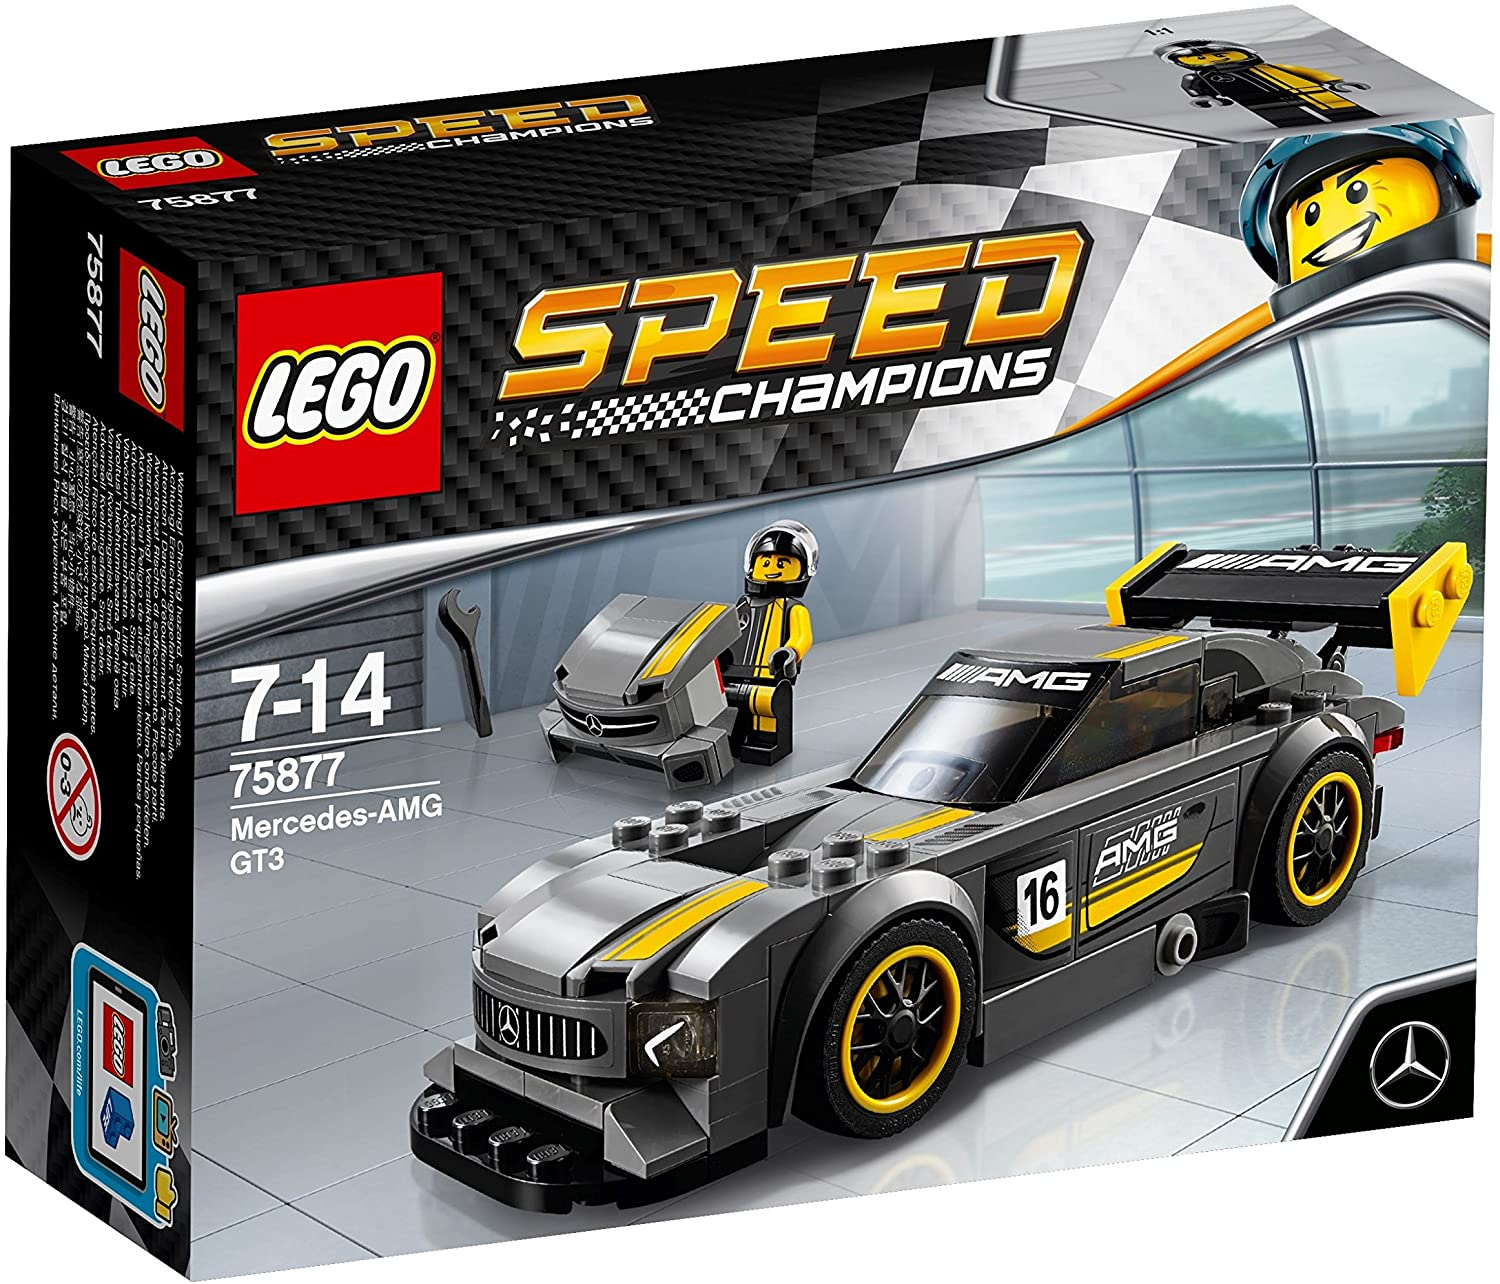 Lego Speed Champions - Mercedes-AMG GT3